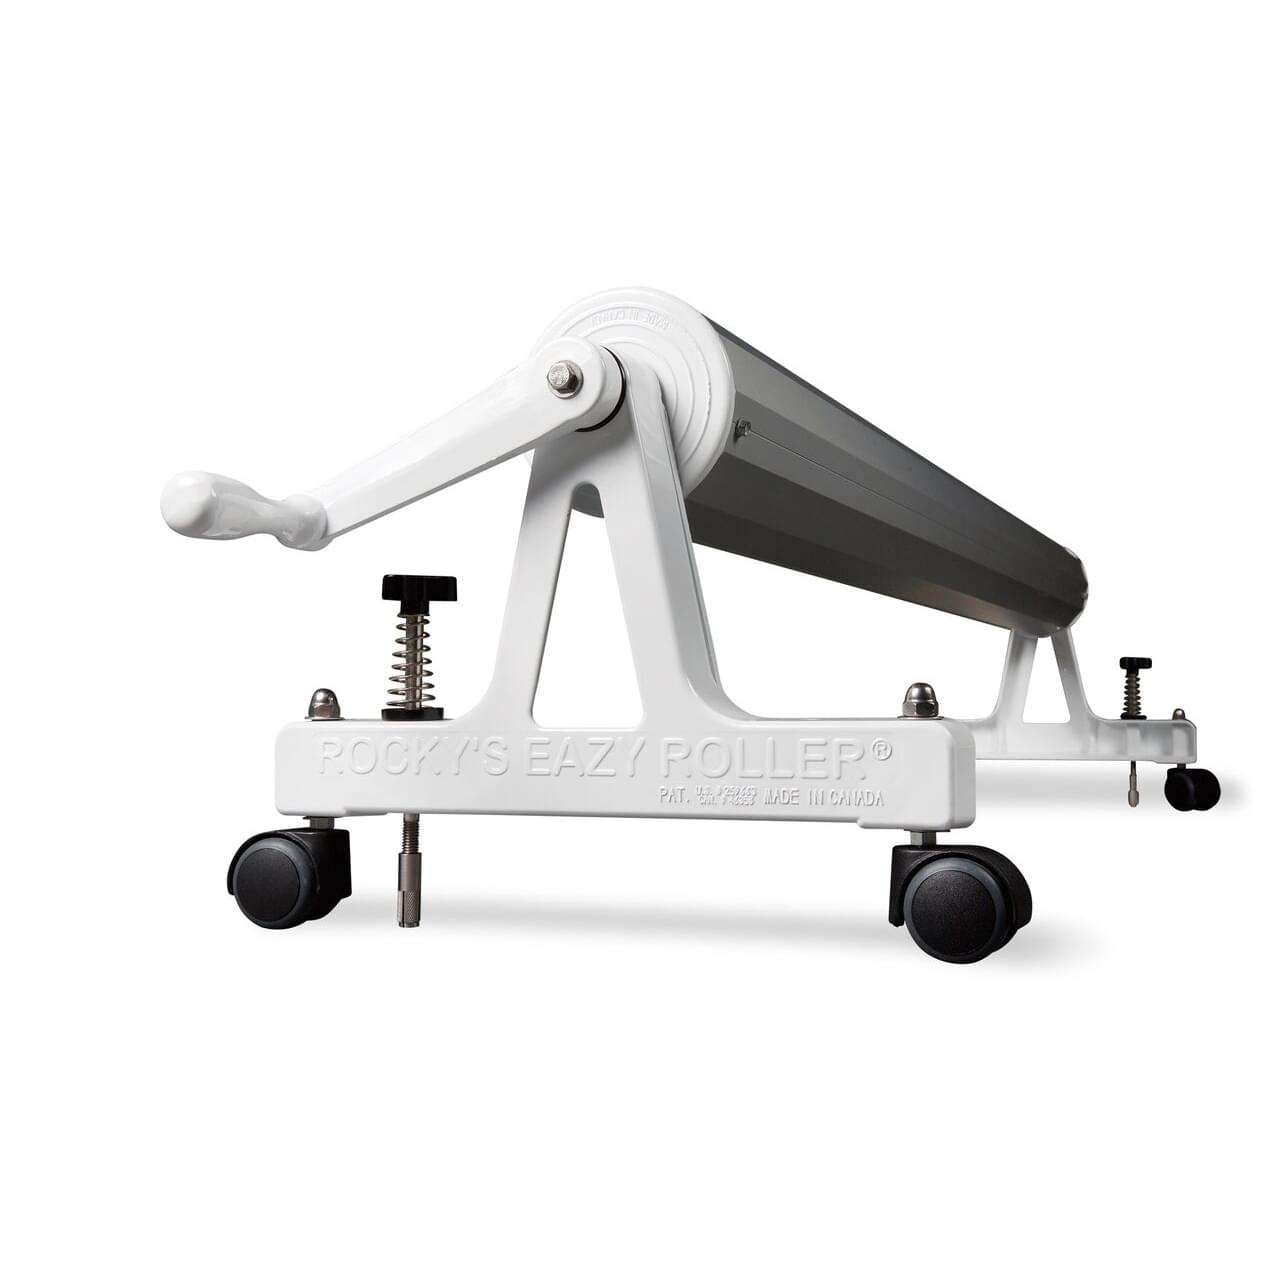 Rocky S 3a Inground Portable Eazy Solar Roller System With